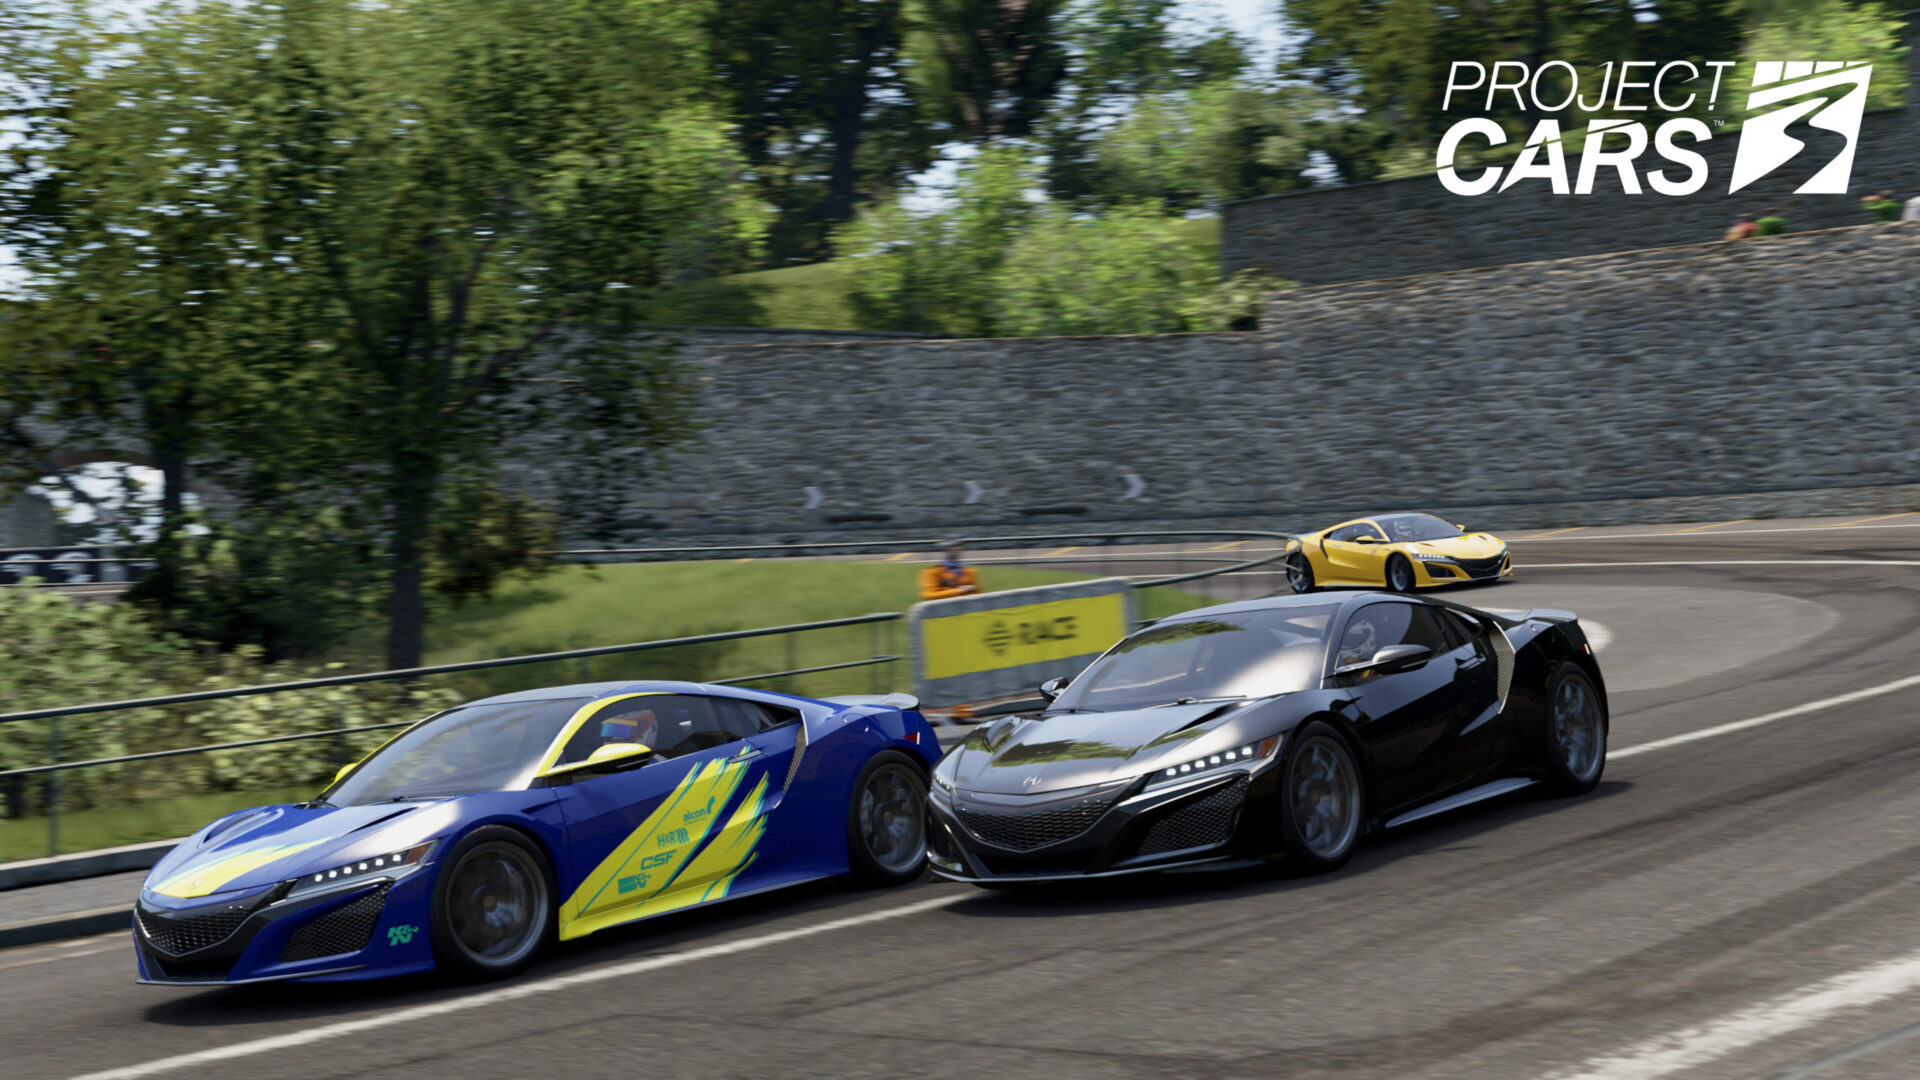 project cars 3 july 2020 7